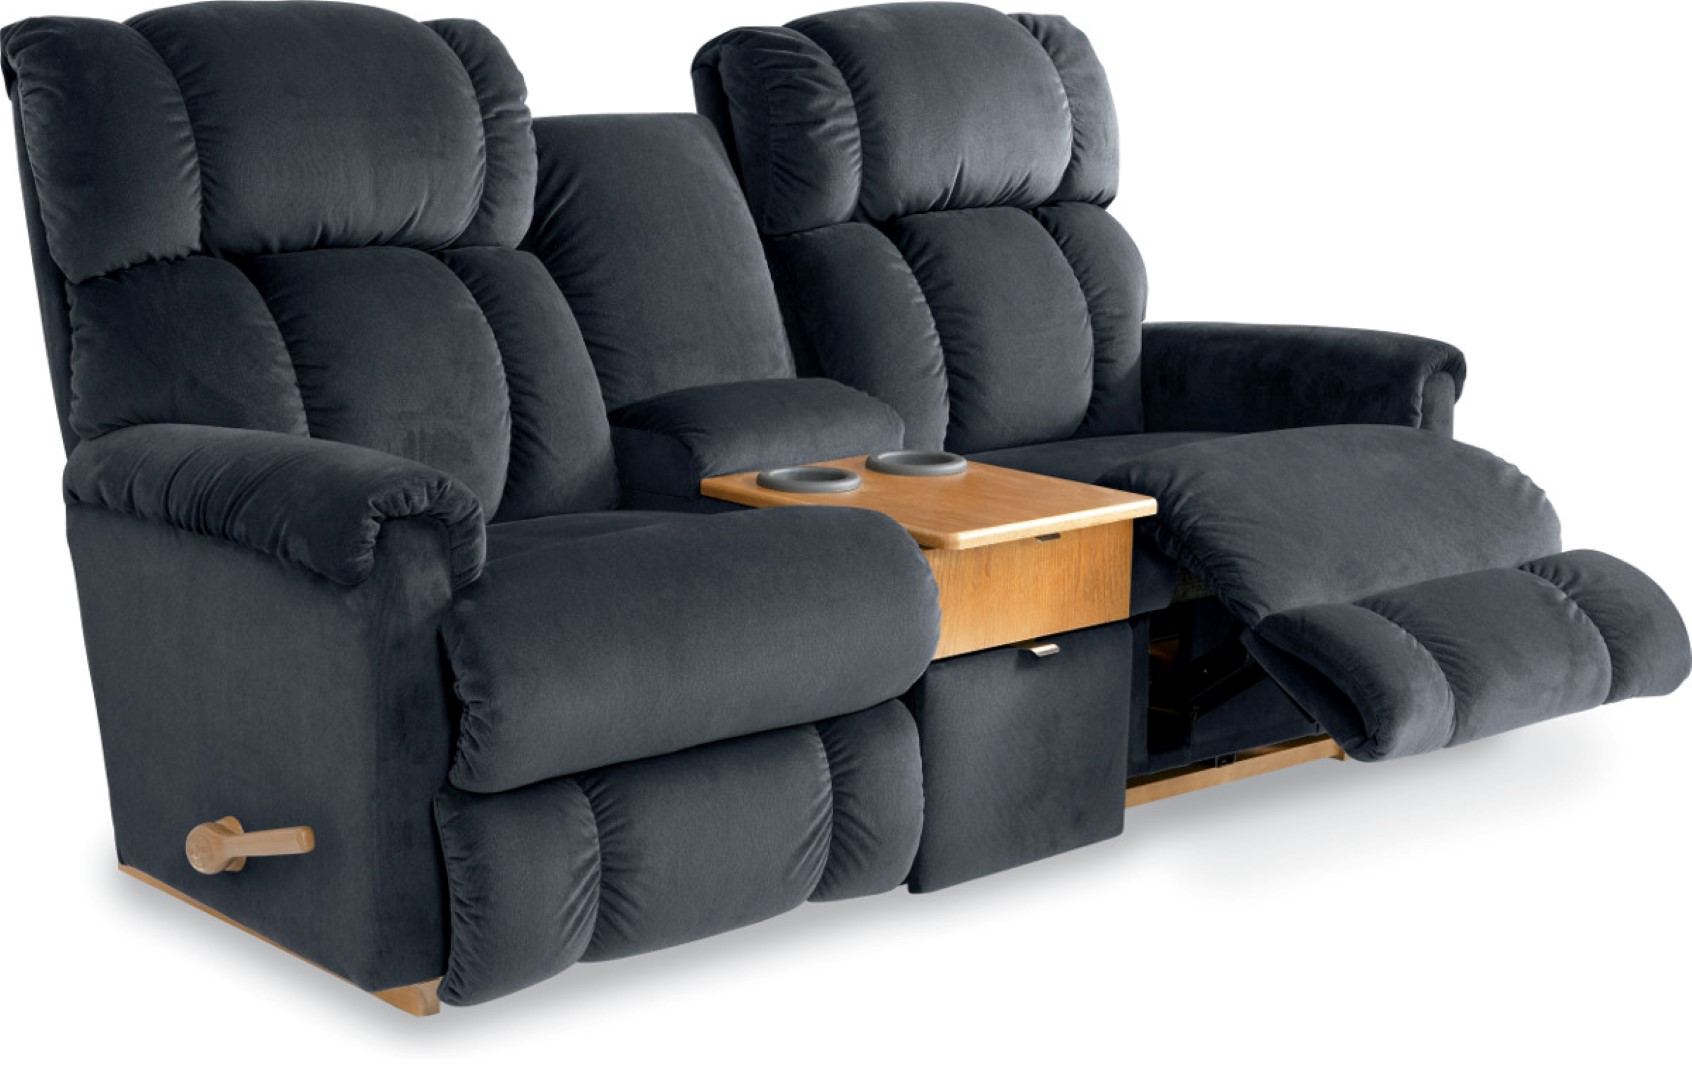 Lazy Boy Sofa Loveseat Recliners Sofa Review